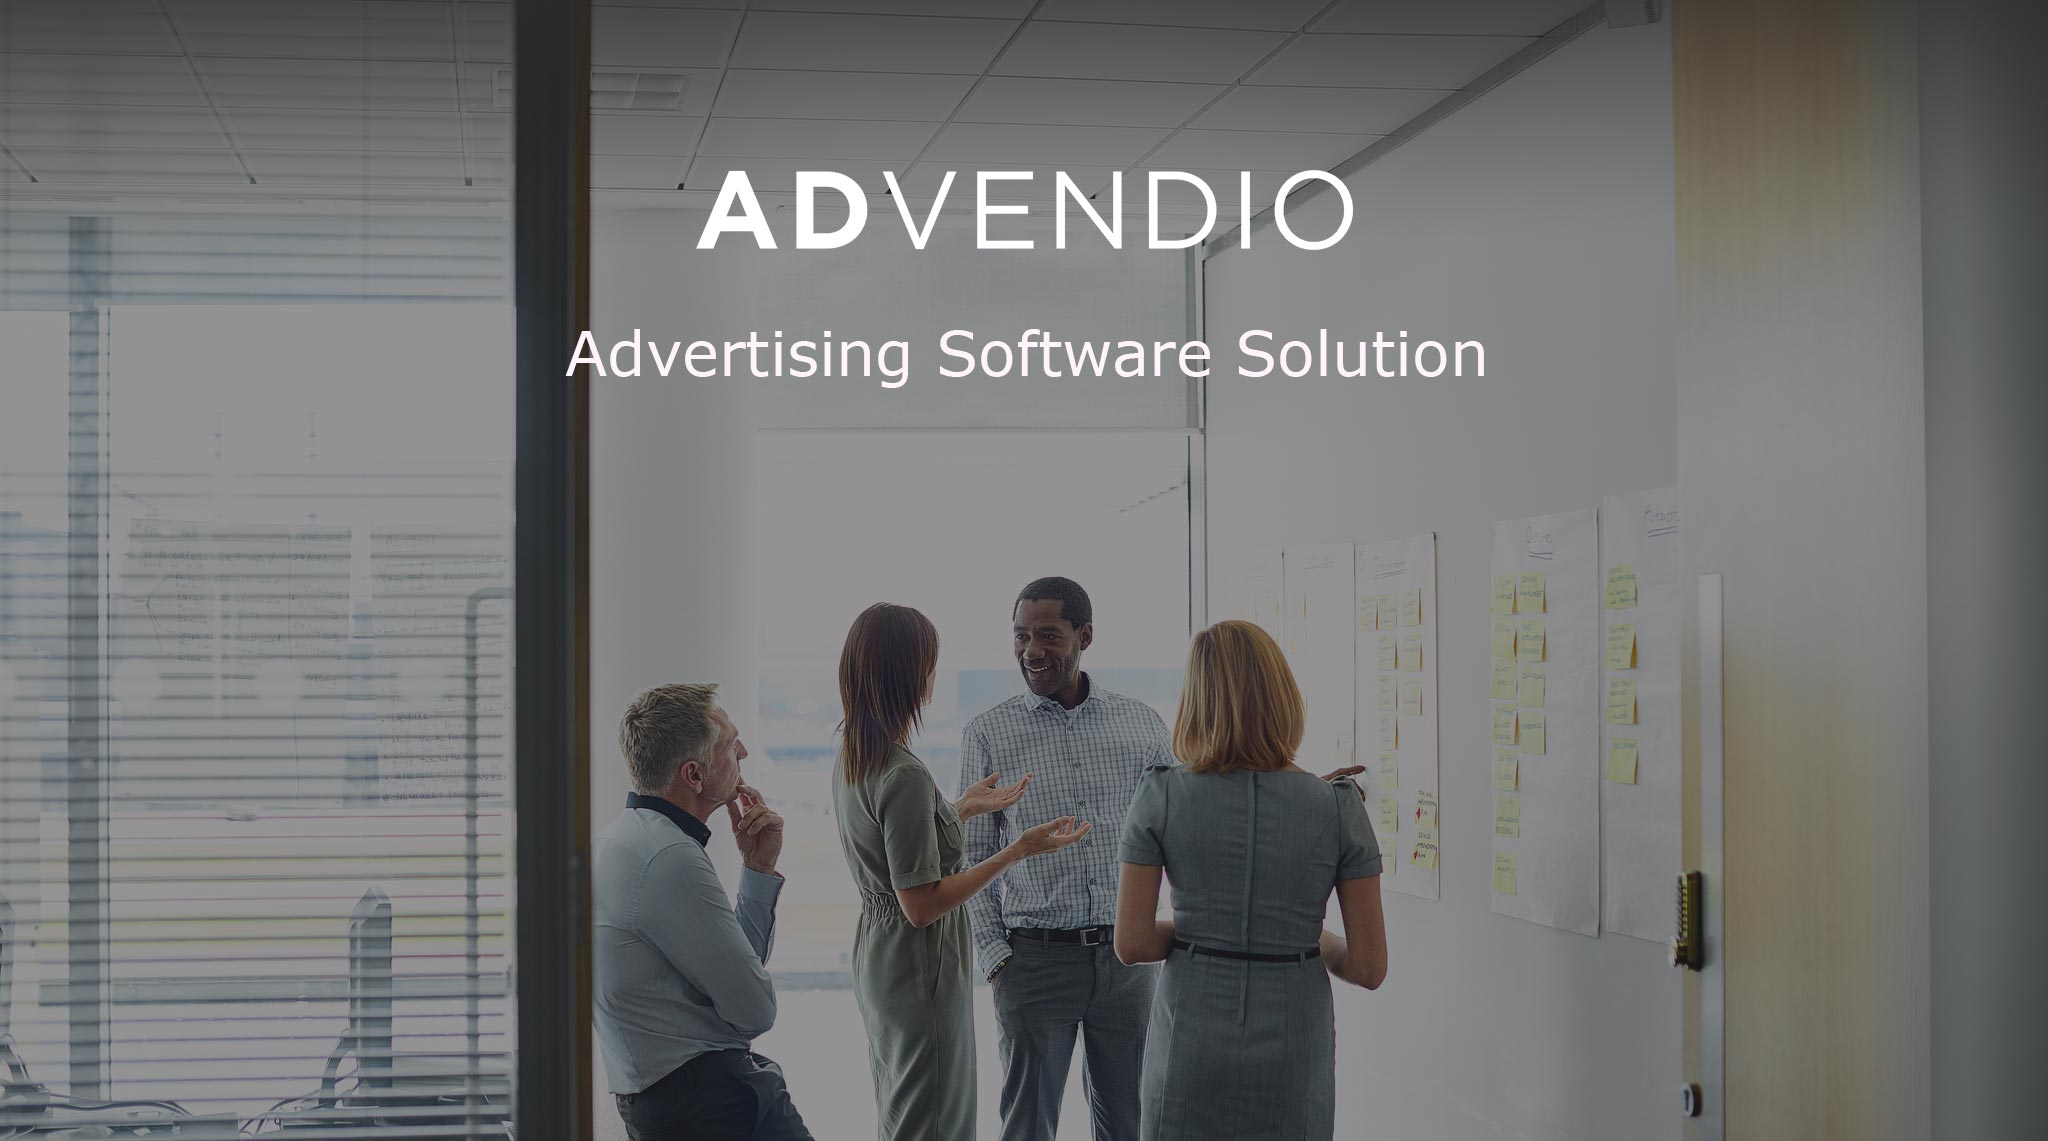 Working At Advendio Advertising Business Solutions